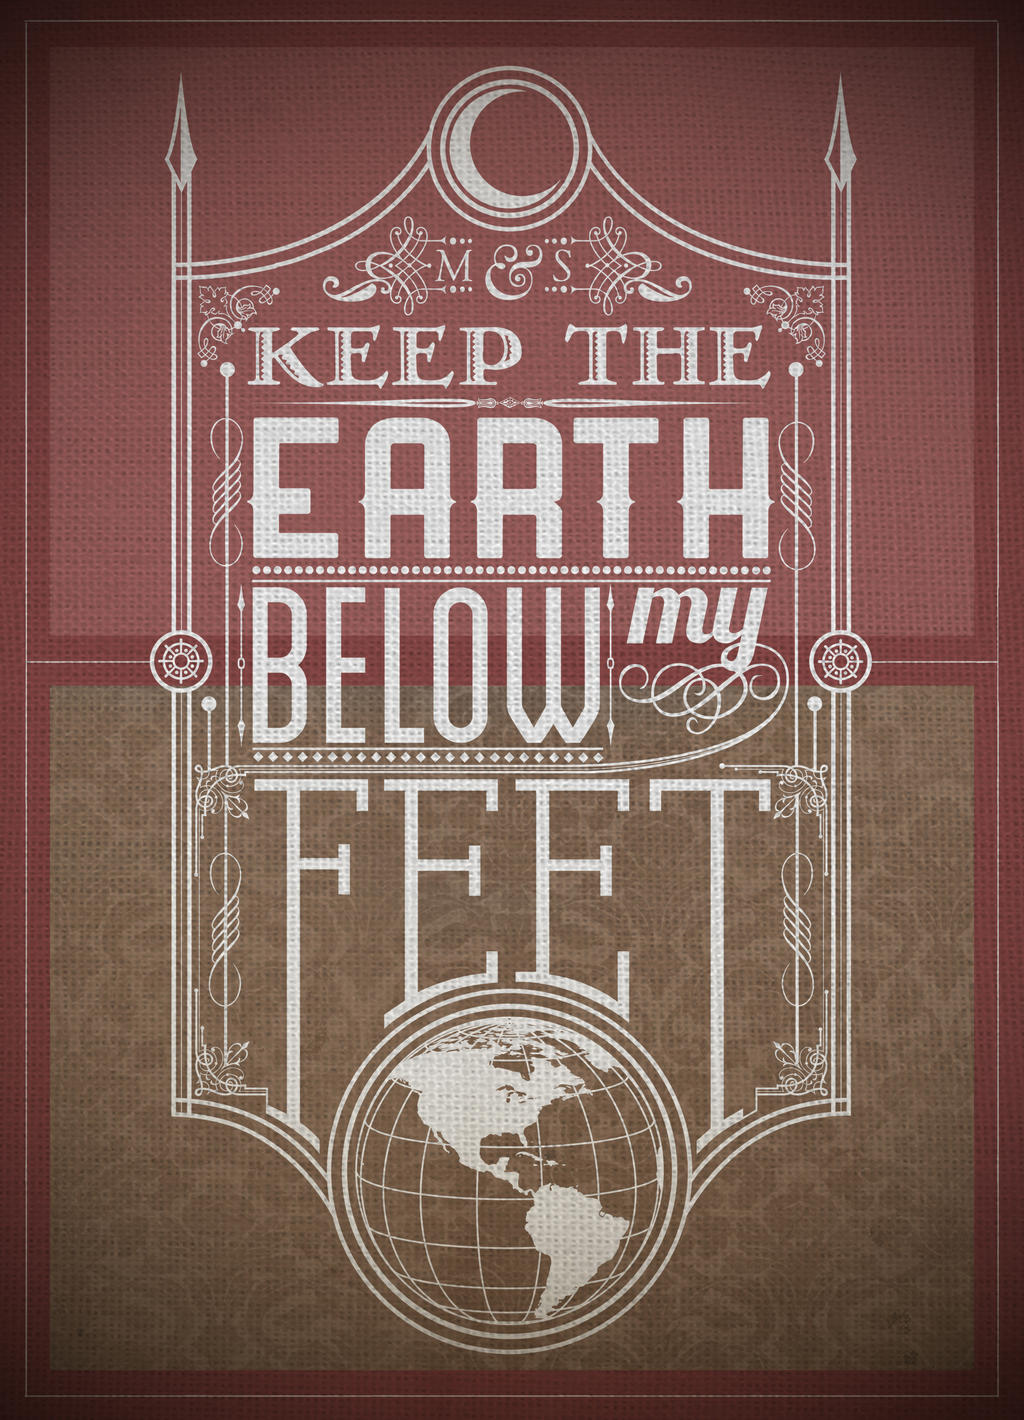 Mumford Typography (Earth) by jss743